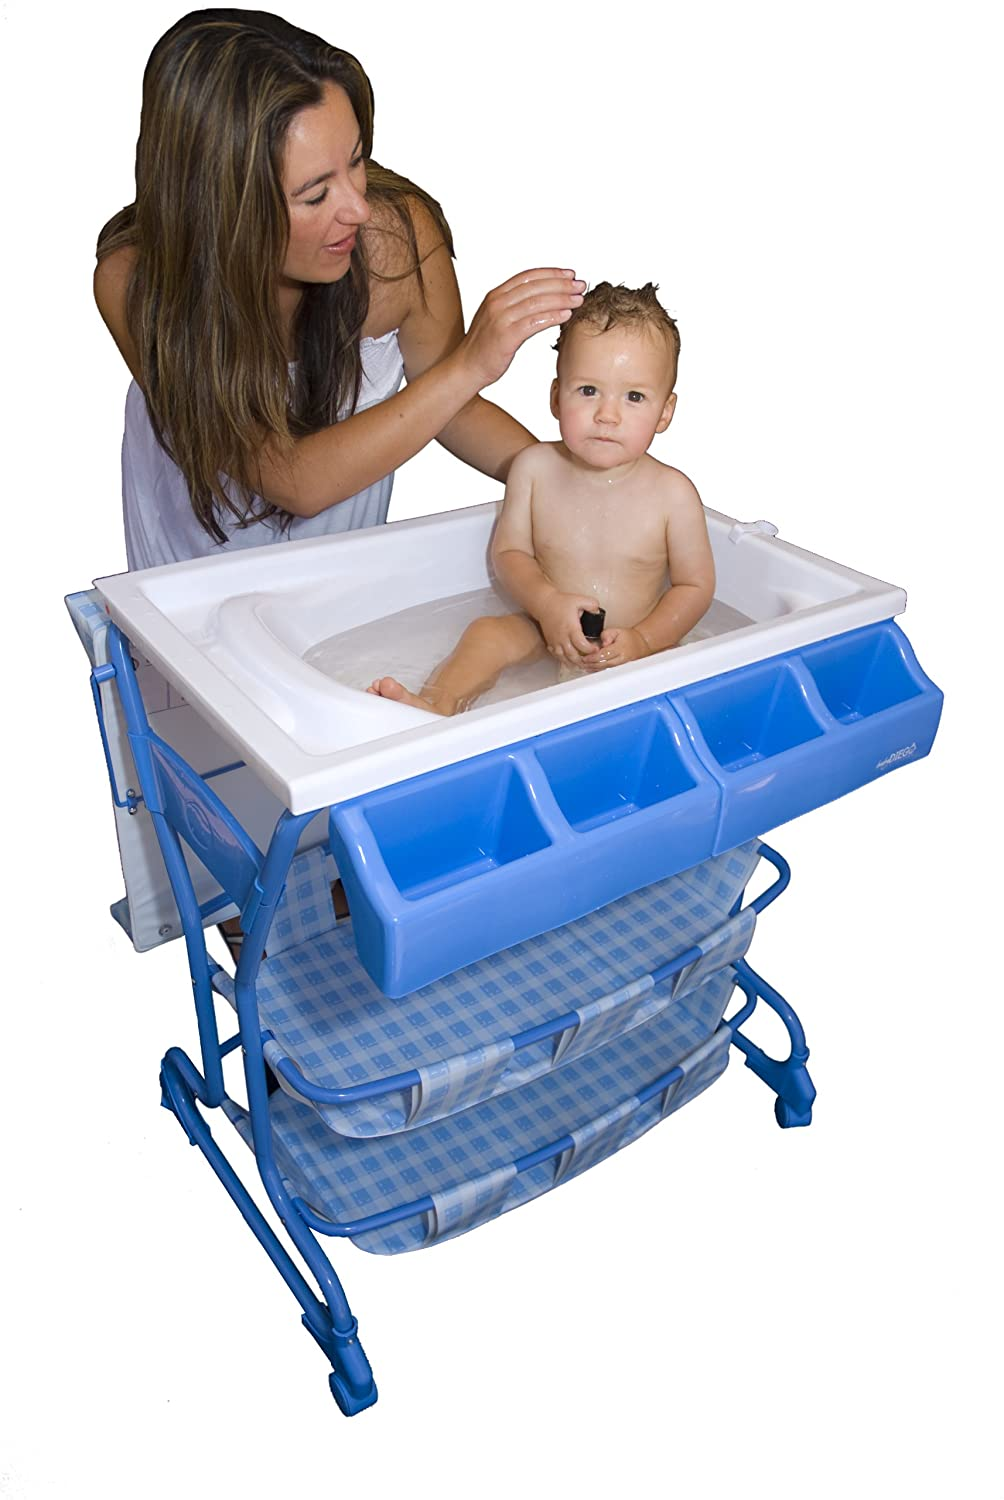 Amazon.com : Baby Diego Bathinette Deluxe, Blue : Baby Bathing Seats ...